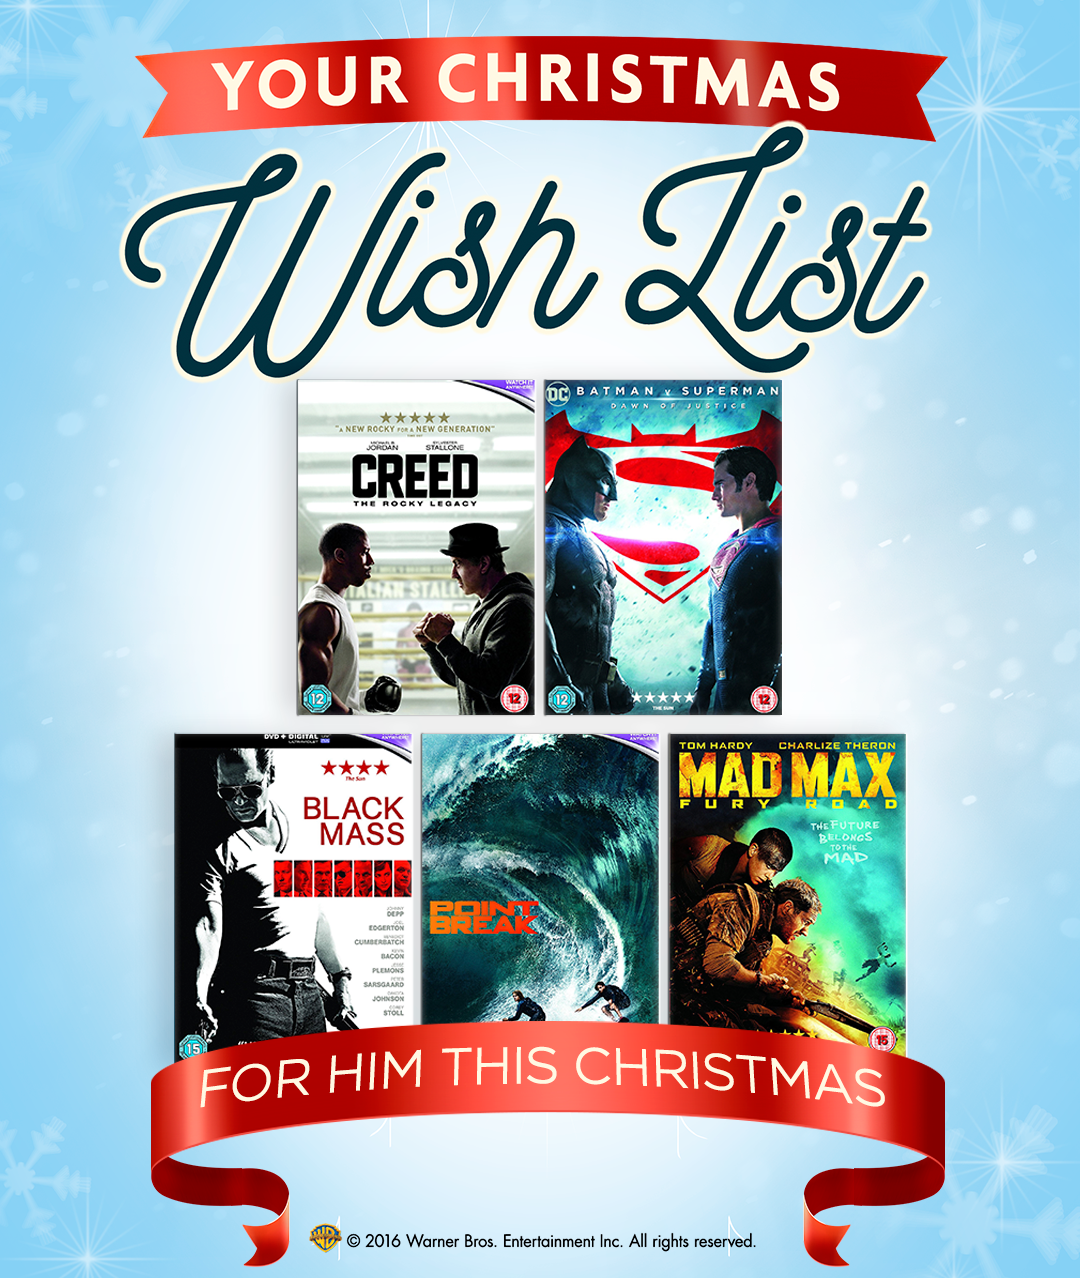 DVDs for him for Christmas